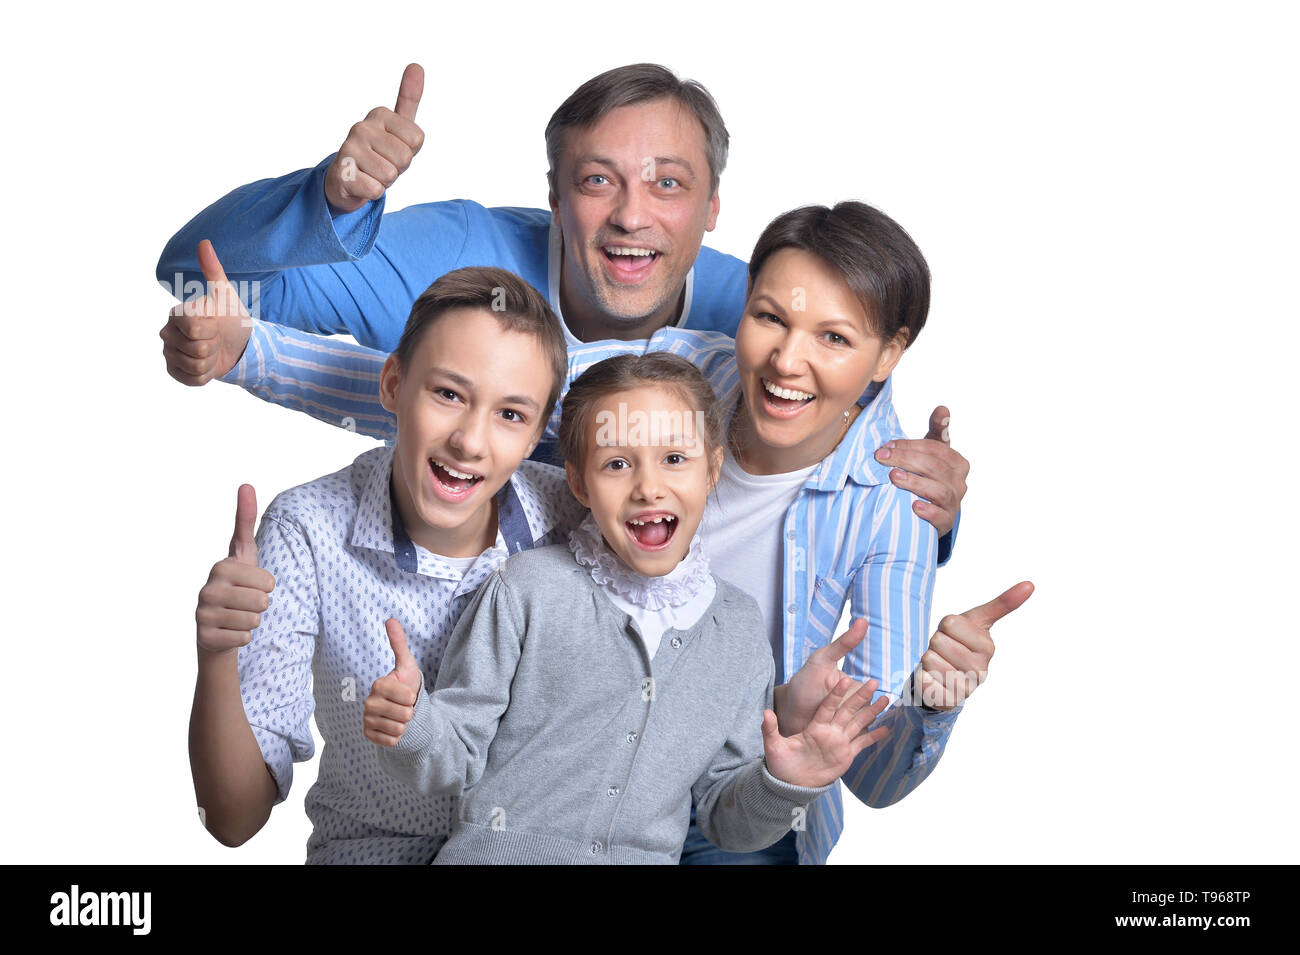 Happy smiling family posing together on white background - Stock Image